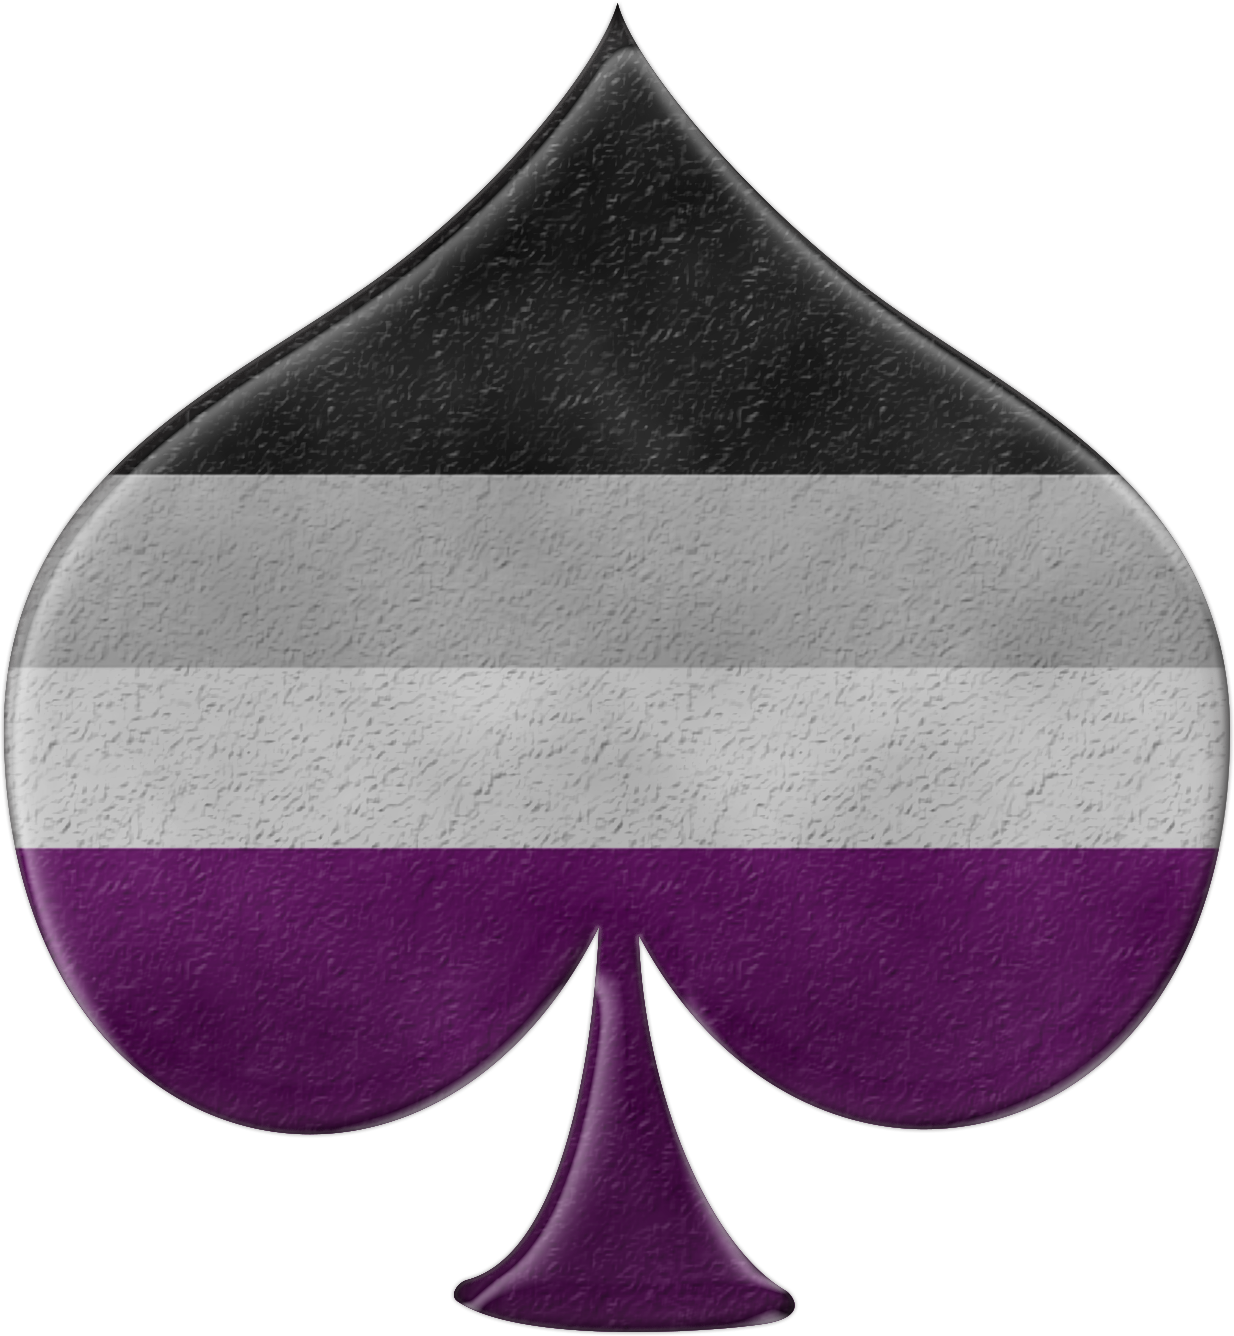 Asexuality ace symbol